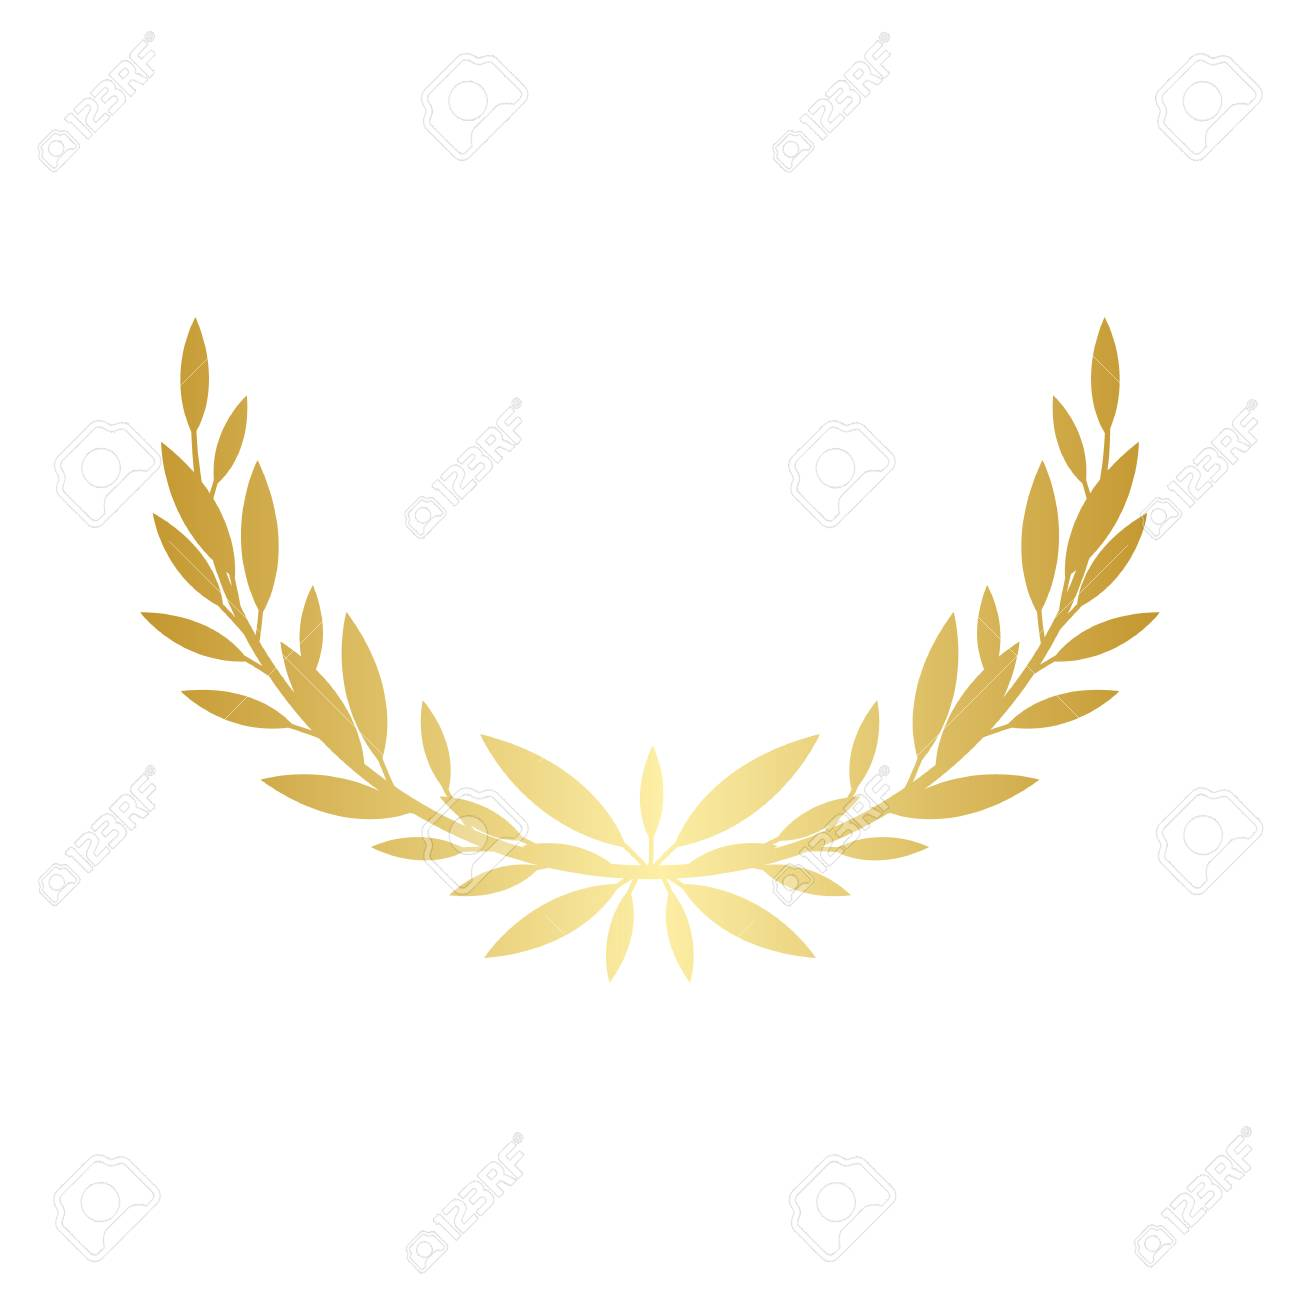 Greek laurel or olive wreath semicircle for the winners and champions award ceremony vector illustration isolated on white background. element. Leaves golden frame icon. - 122281142